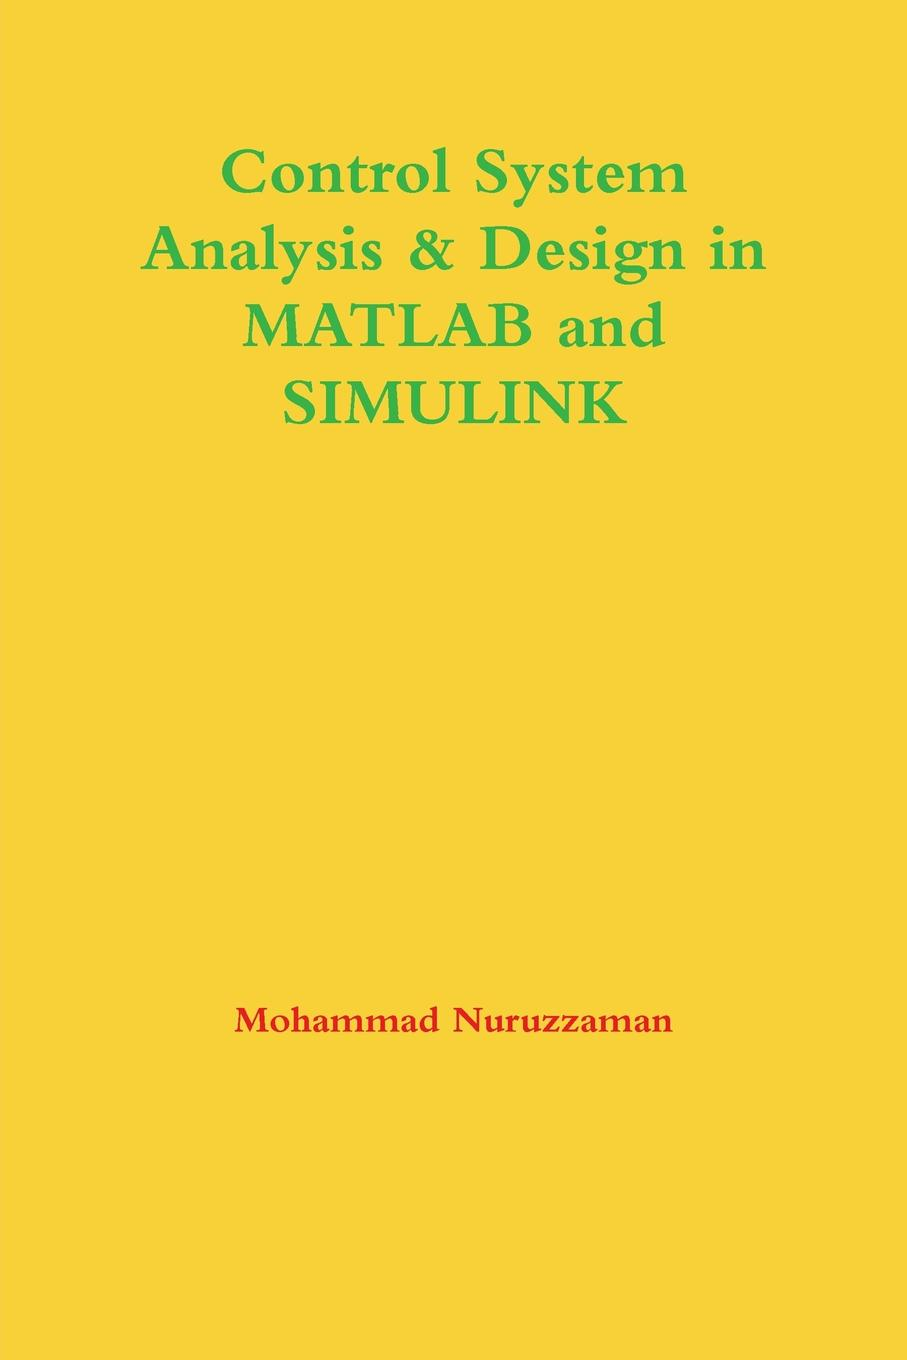 Mohammad Nuruzzaman Control System Analysis . Design in MATLAB and Simulink 125khz card reader for access control system